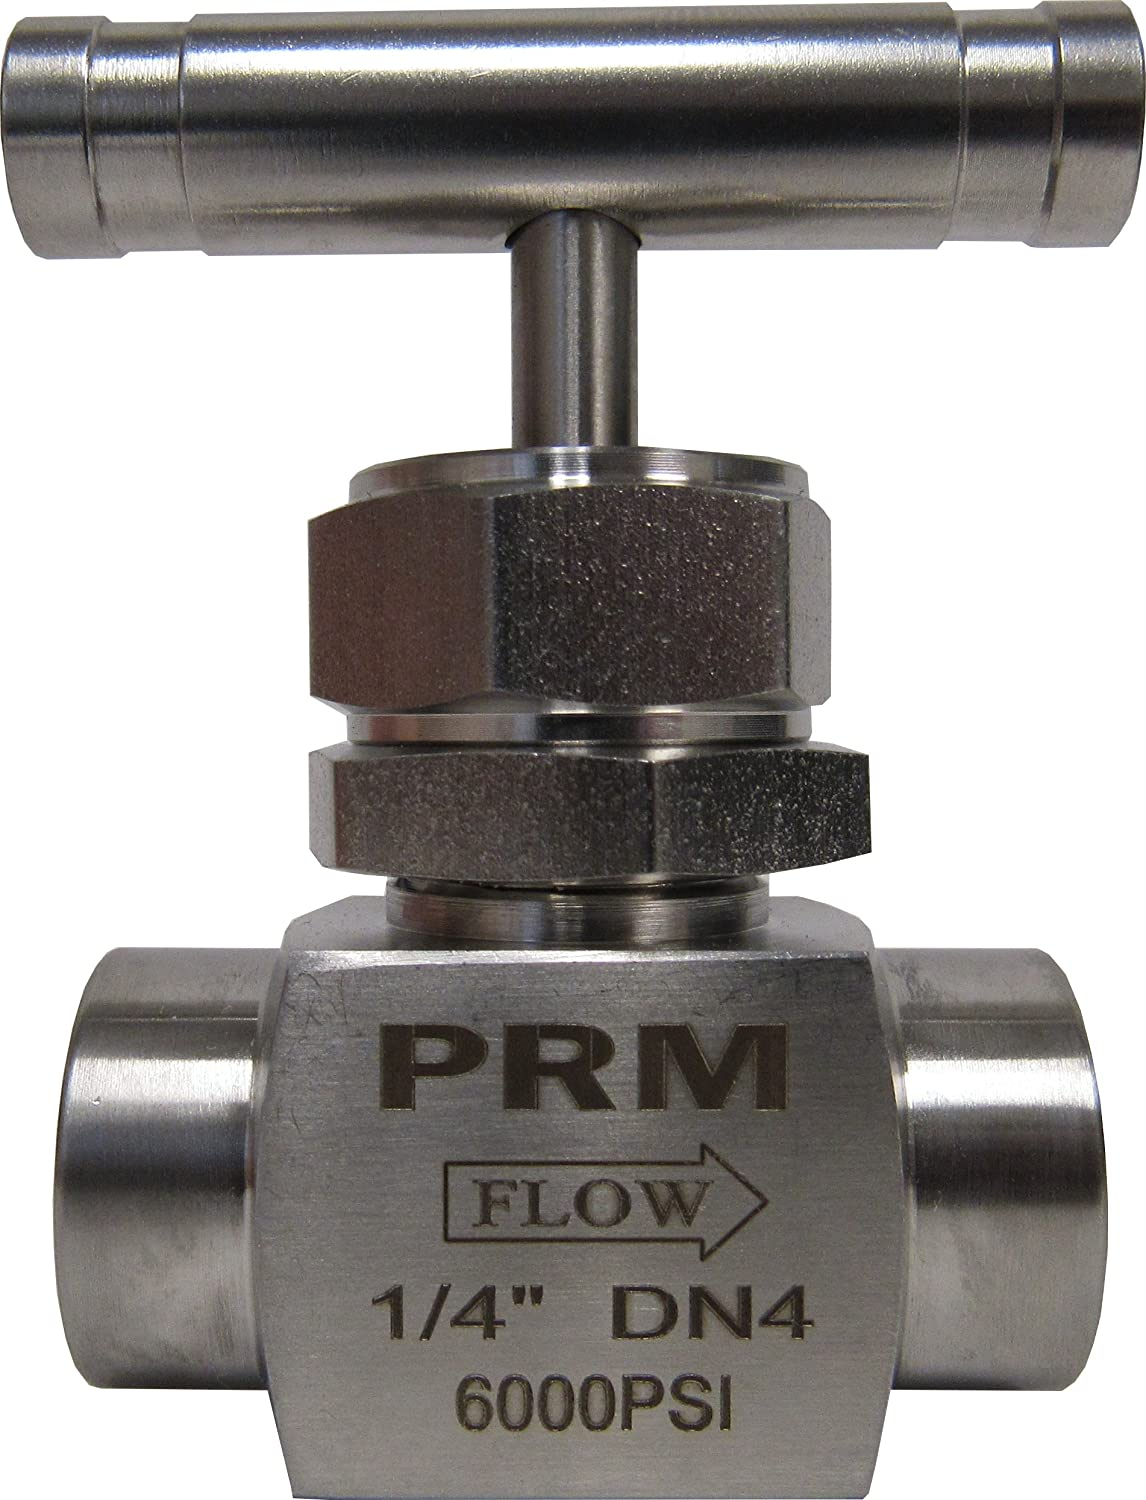 6000 psi Pressure 1//4 Male NPT x 1//4 Male NPT Connection Size Gas PIC Gauge NVS-CS-1//4-GS180-MXM Carbon Steel Small Body Straight Needle Valve with Round Handle